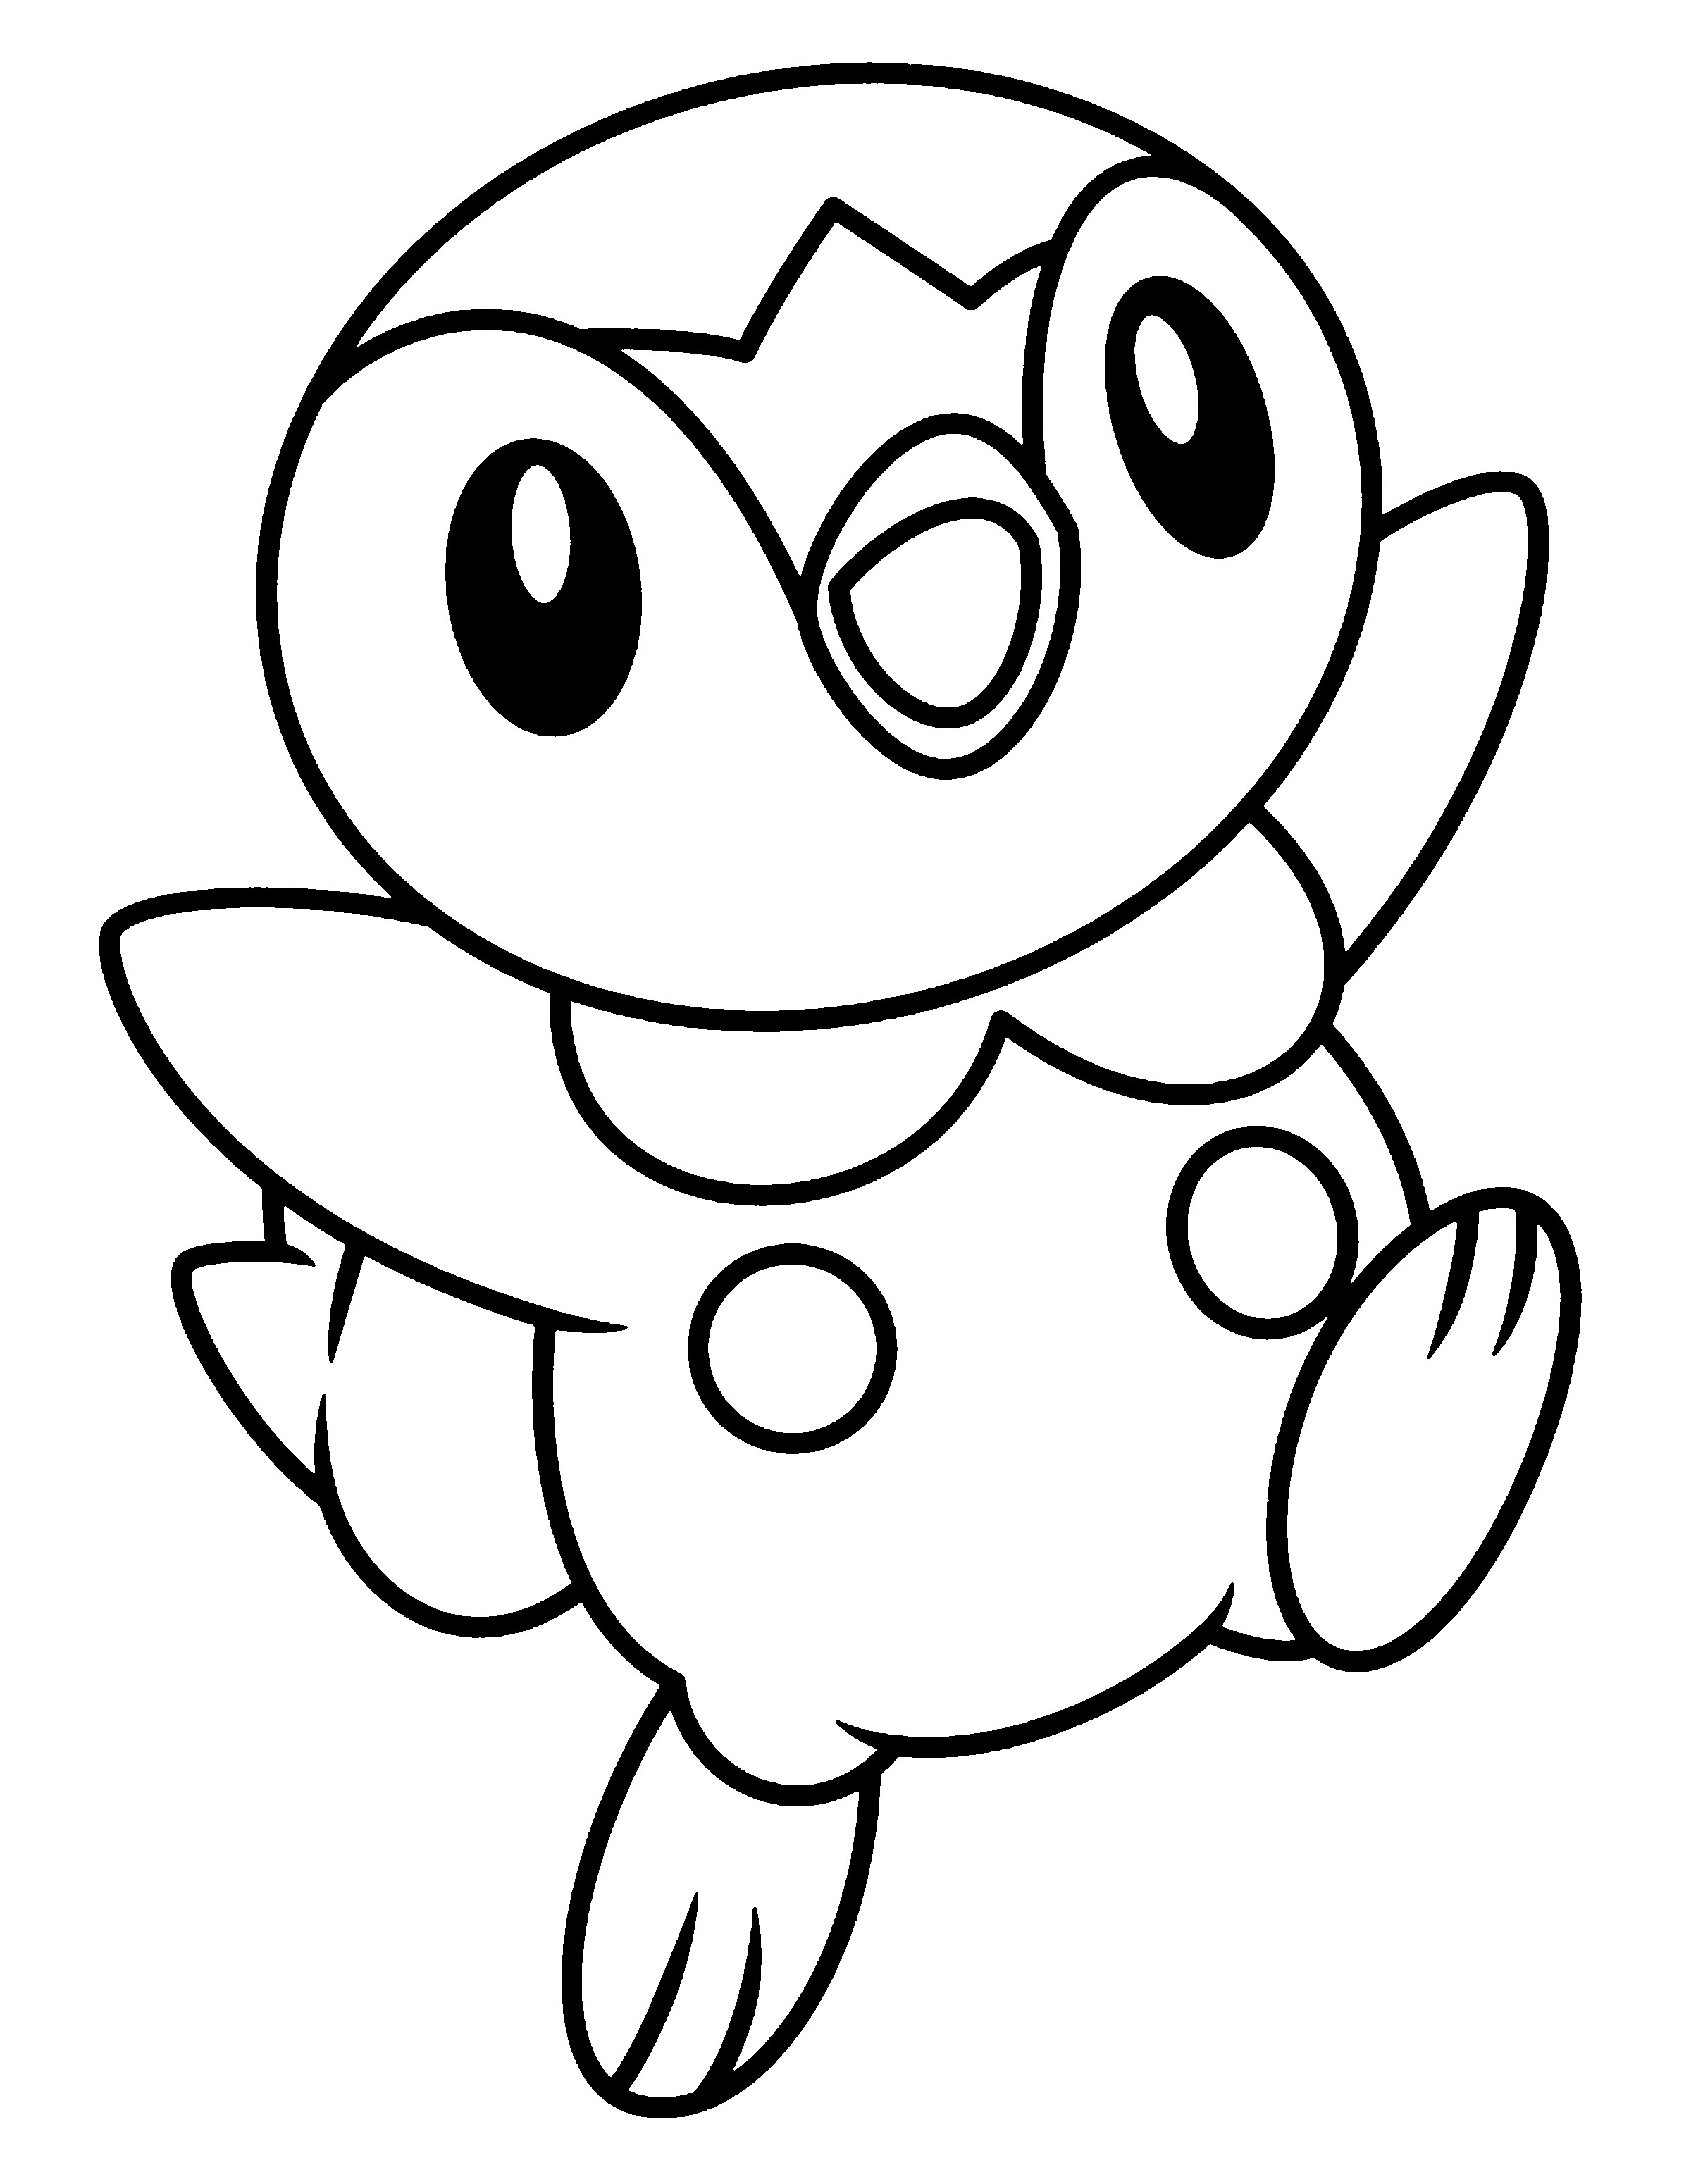 Free coloring pages of pokemon x and y - Free Pokemon Diamond Pearl Coloring Page Pokemon Diamond Pearl Coloring Pages 15 Printable Coloring Page